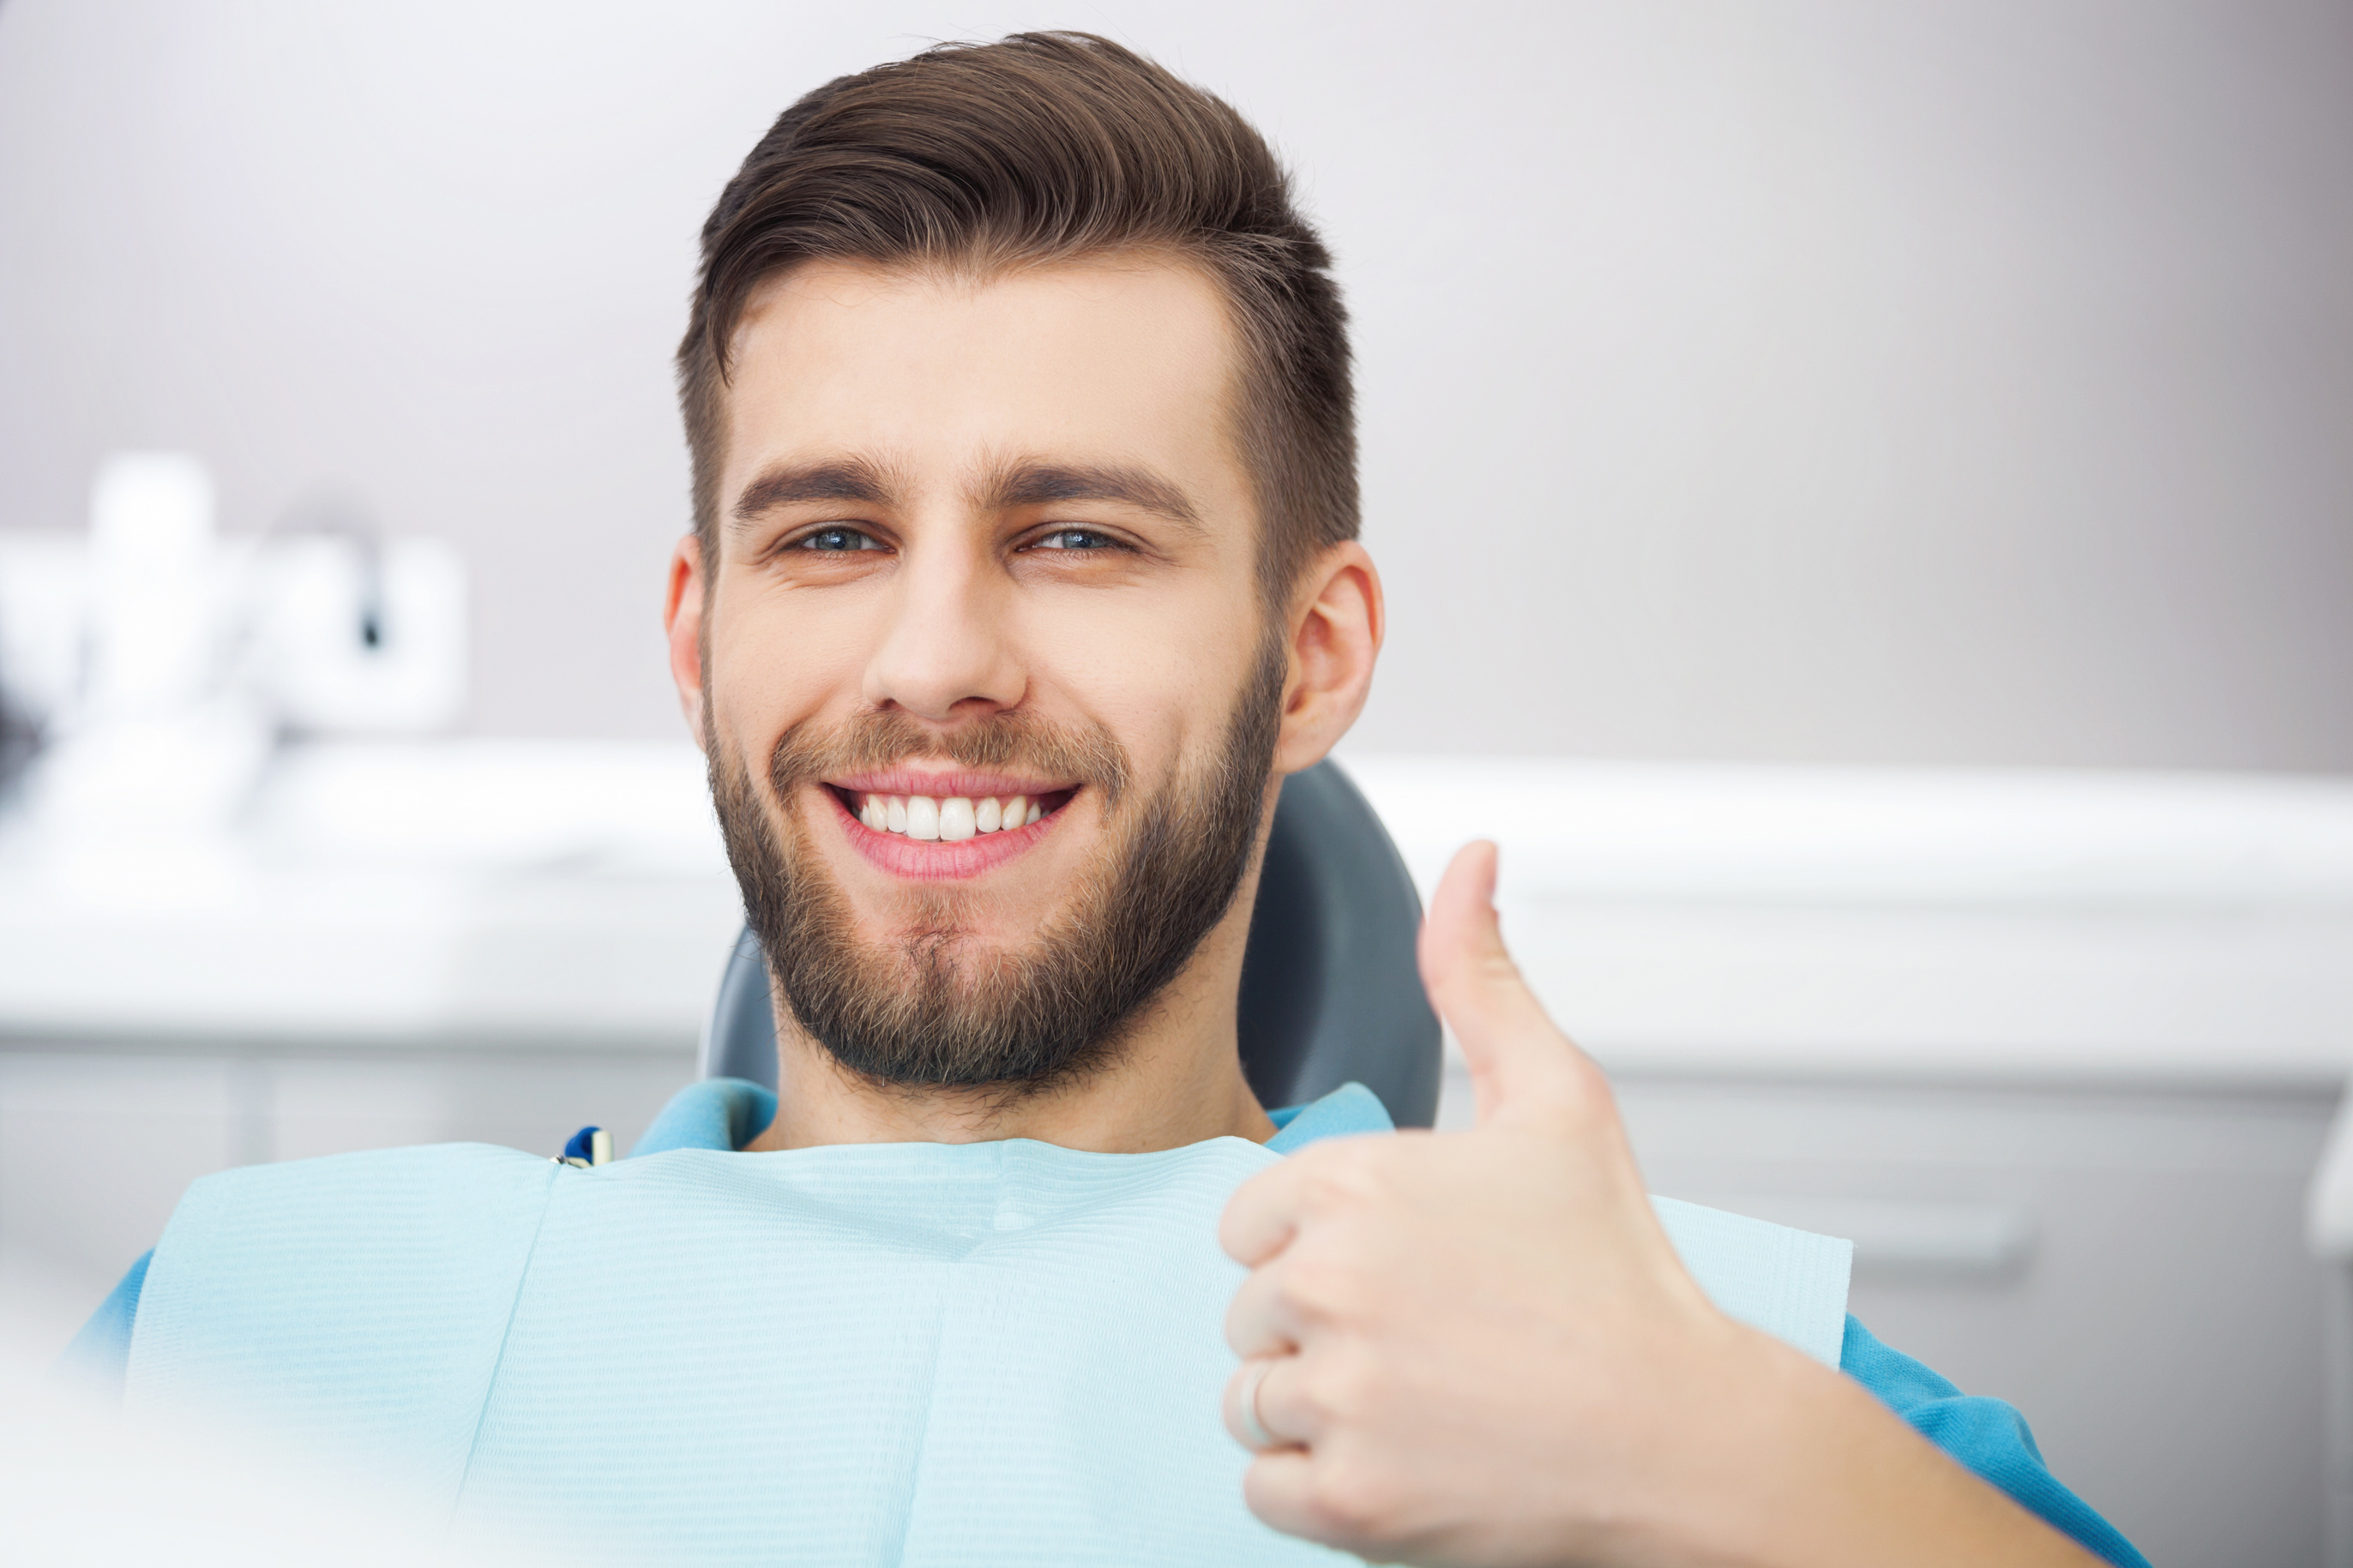 Where can I find a Torrance dentist?